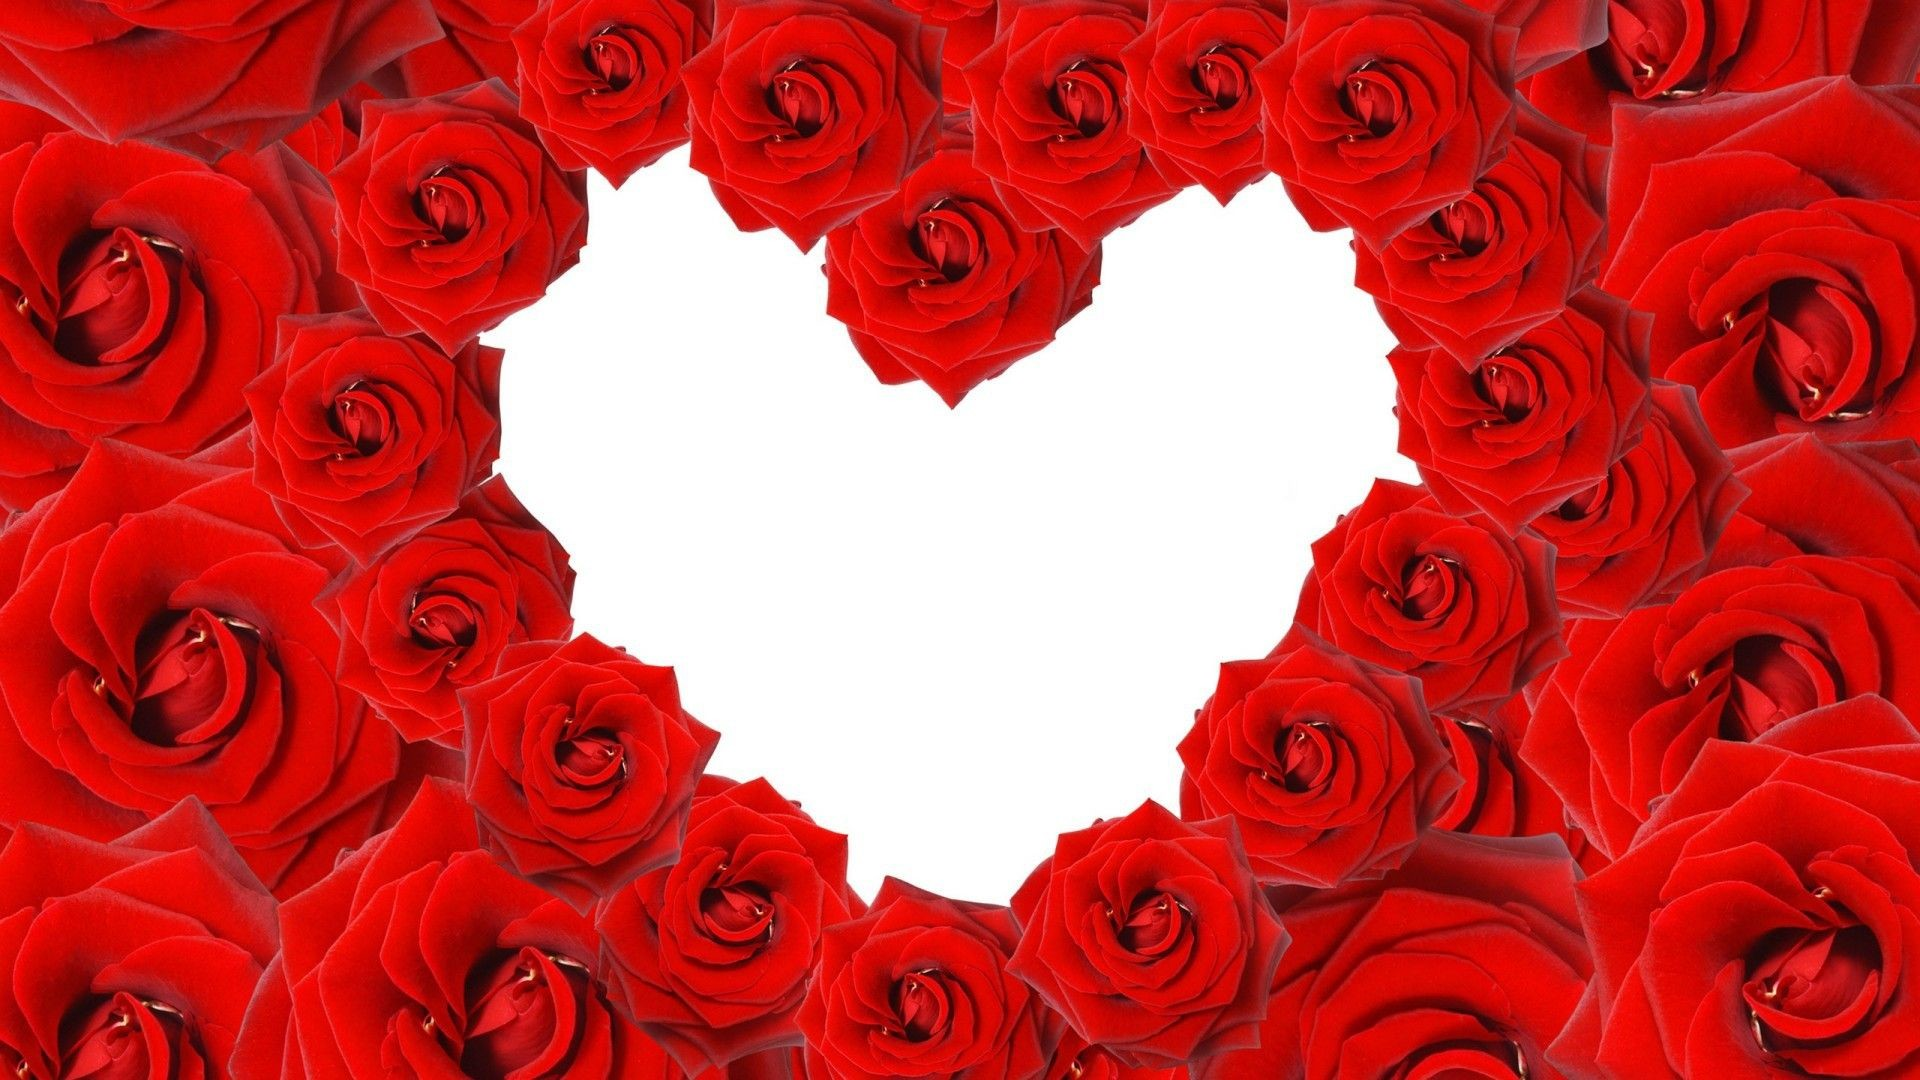 1920x1080 Love Red roses in a heart shape on white background